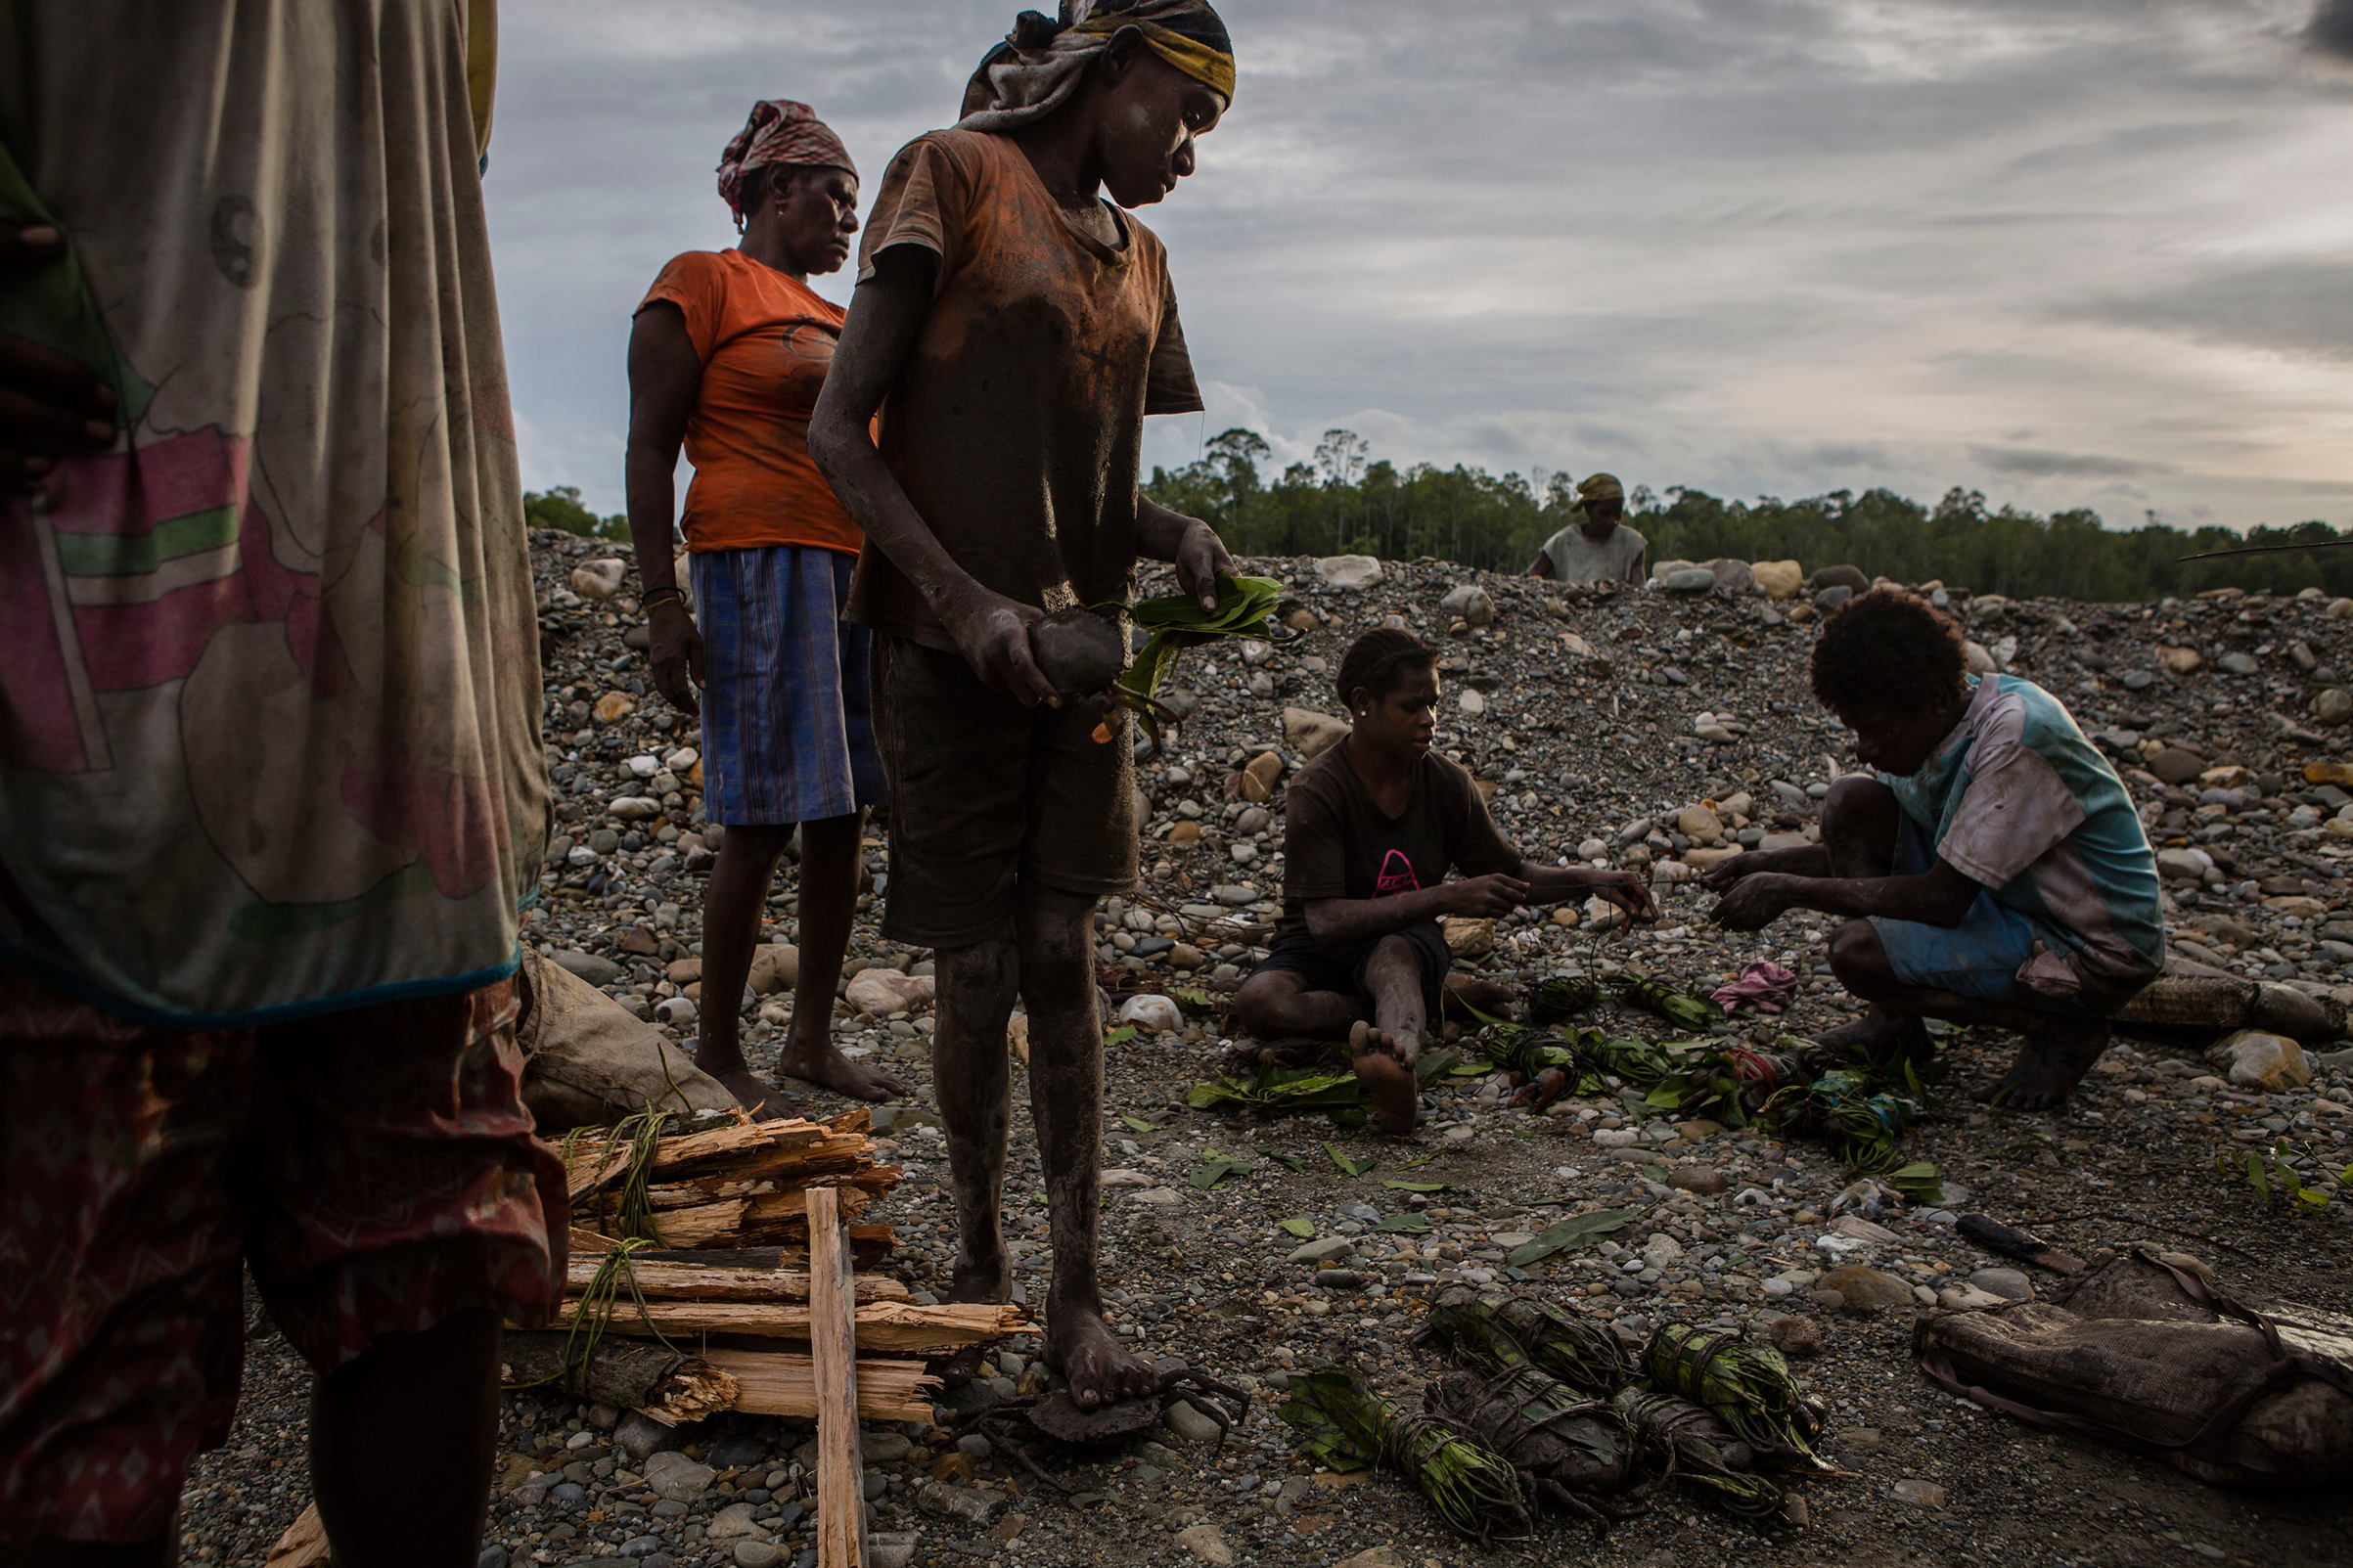 Locals work to catch crabs from the mining operations site in Timika, Papua Province, Indonesia, on Feb. 2, 2017